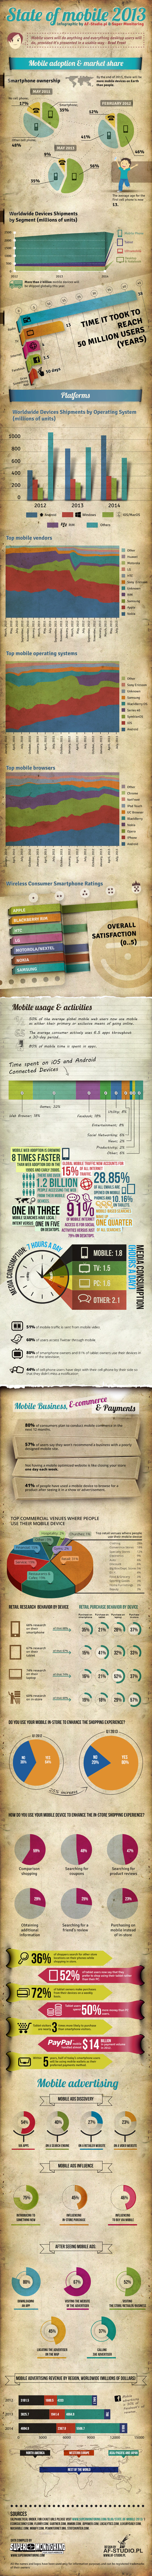 015 Android infographics